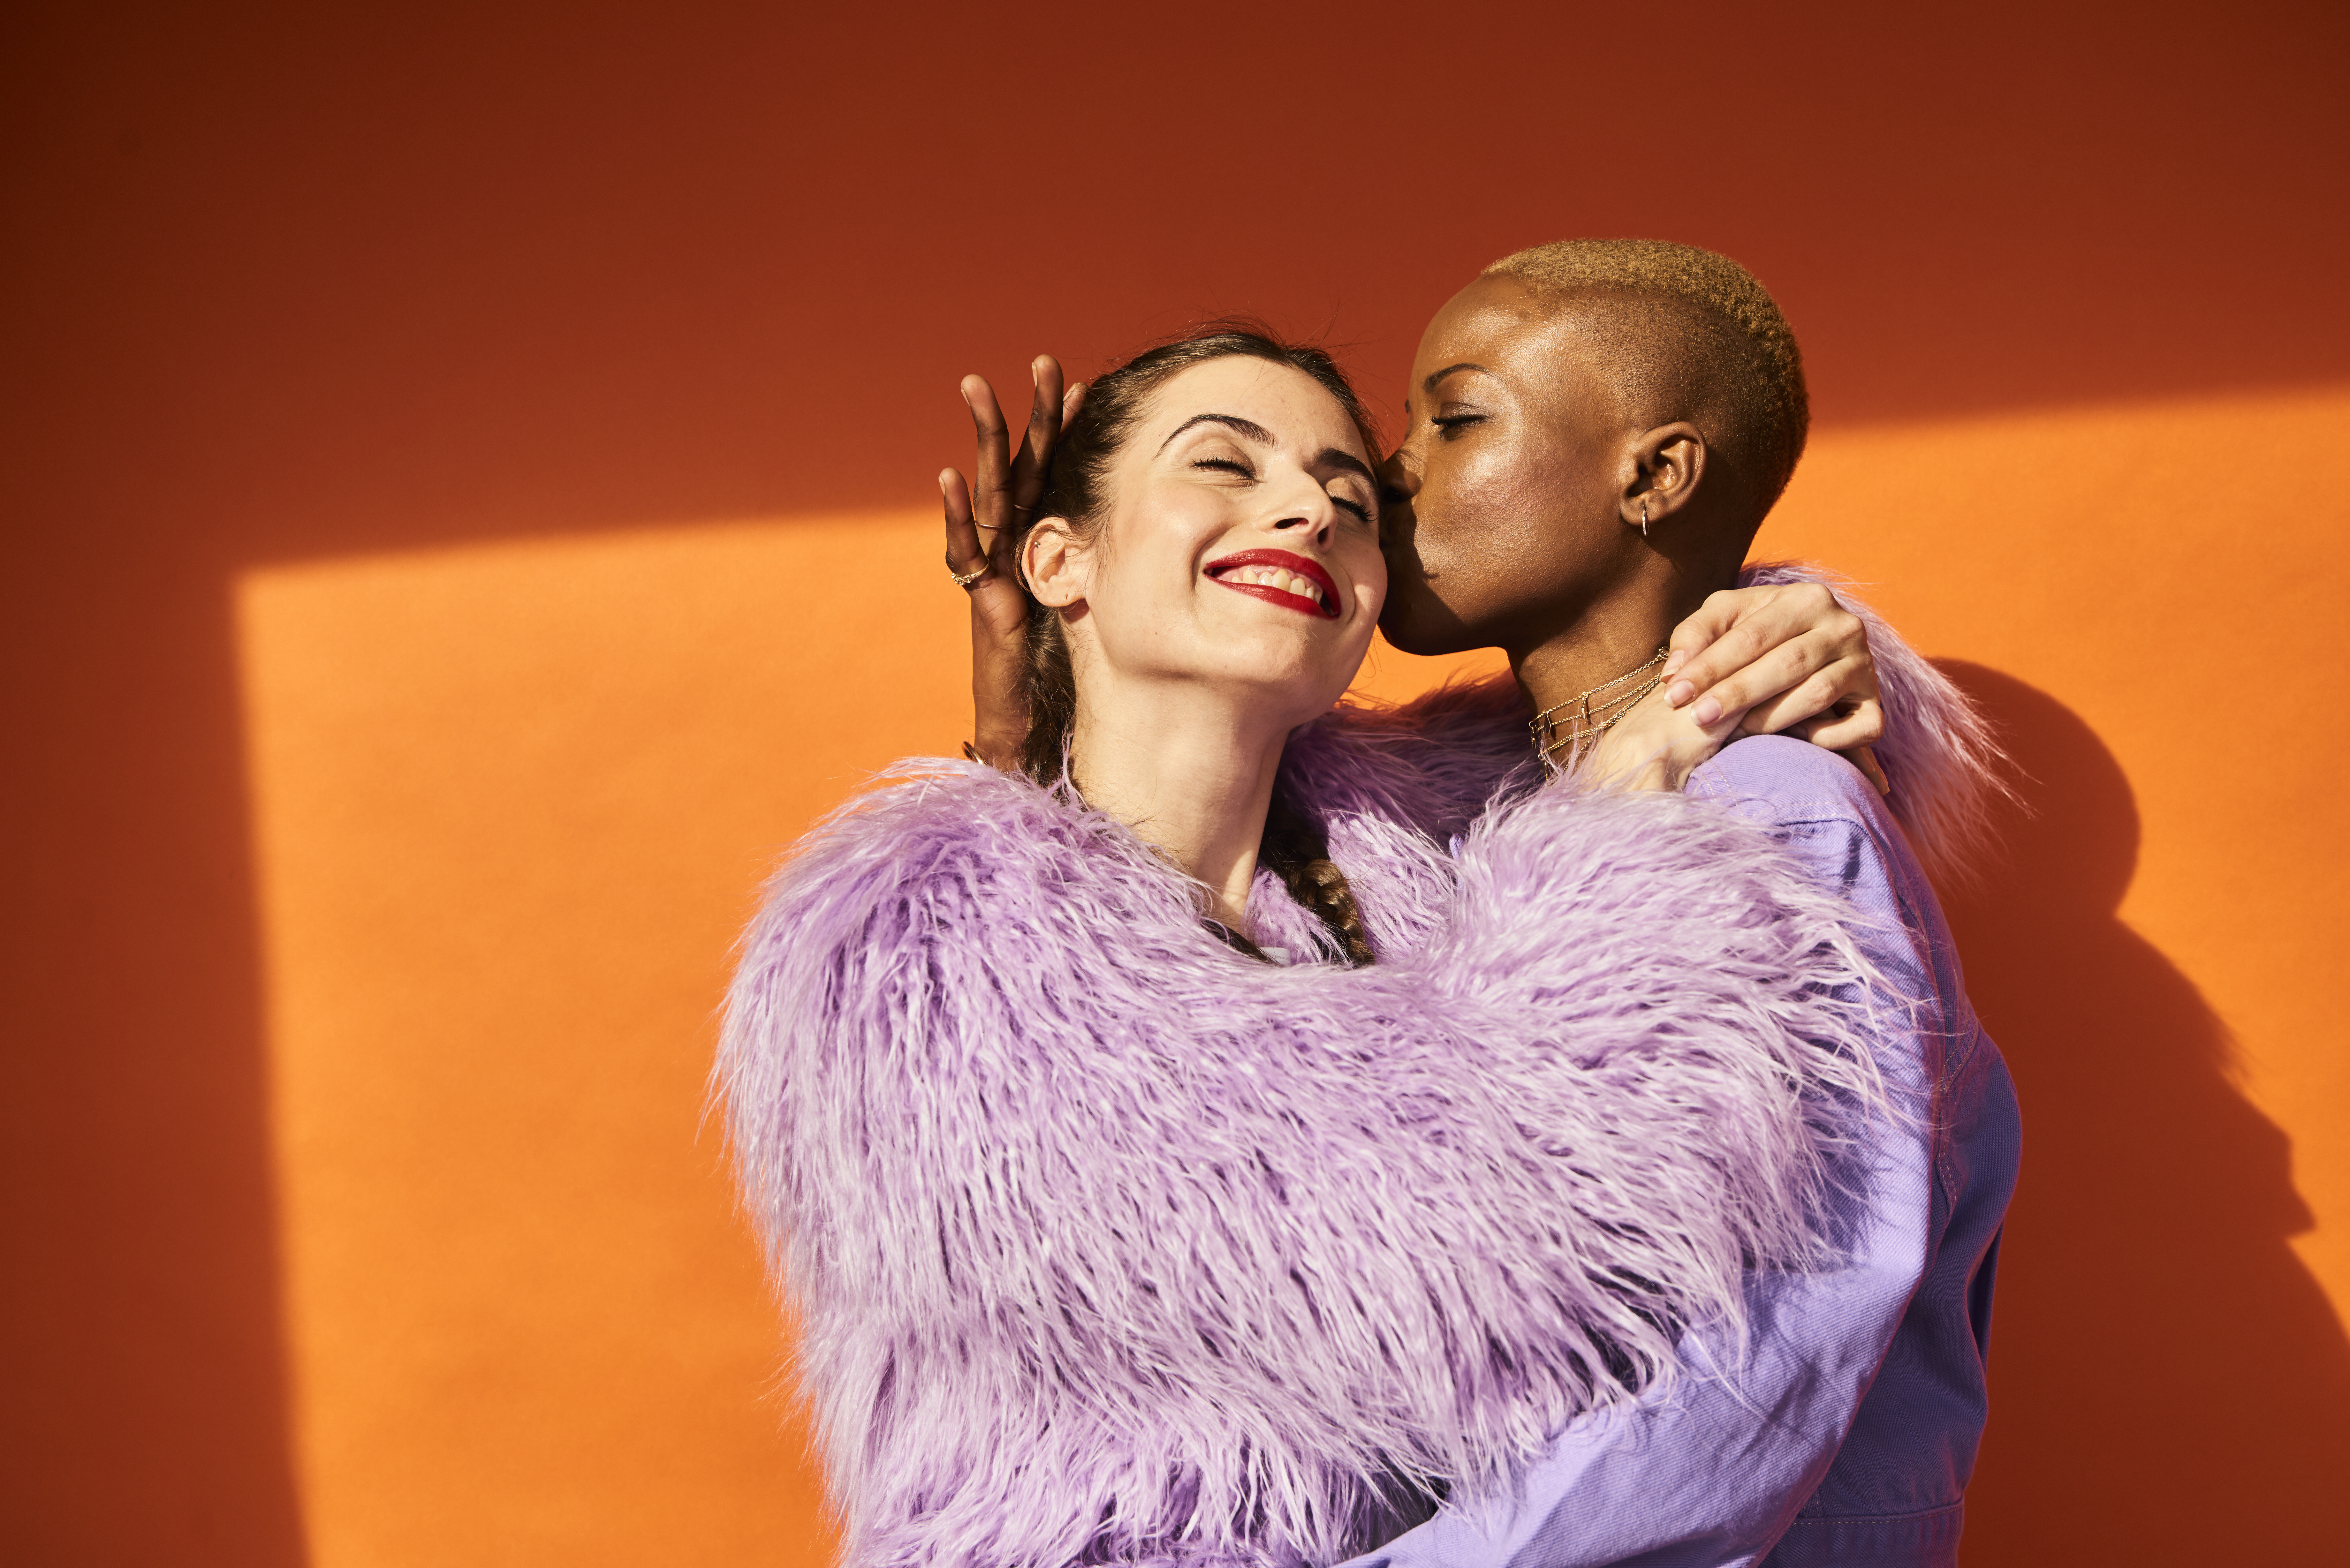 An interracial queer couple kiss in front of an orange background